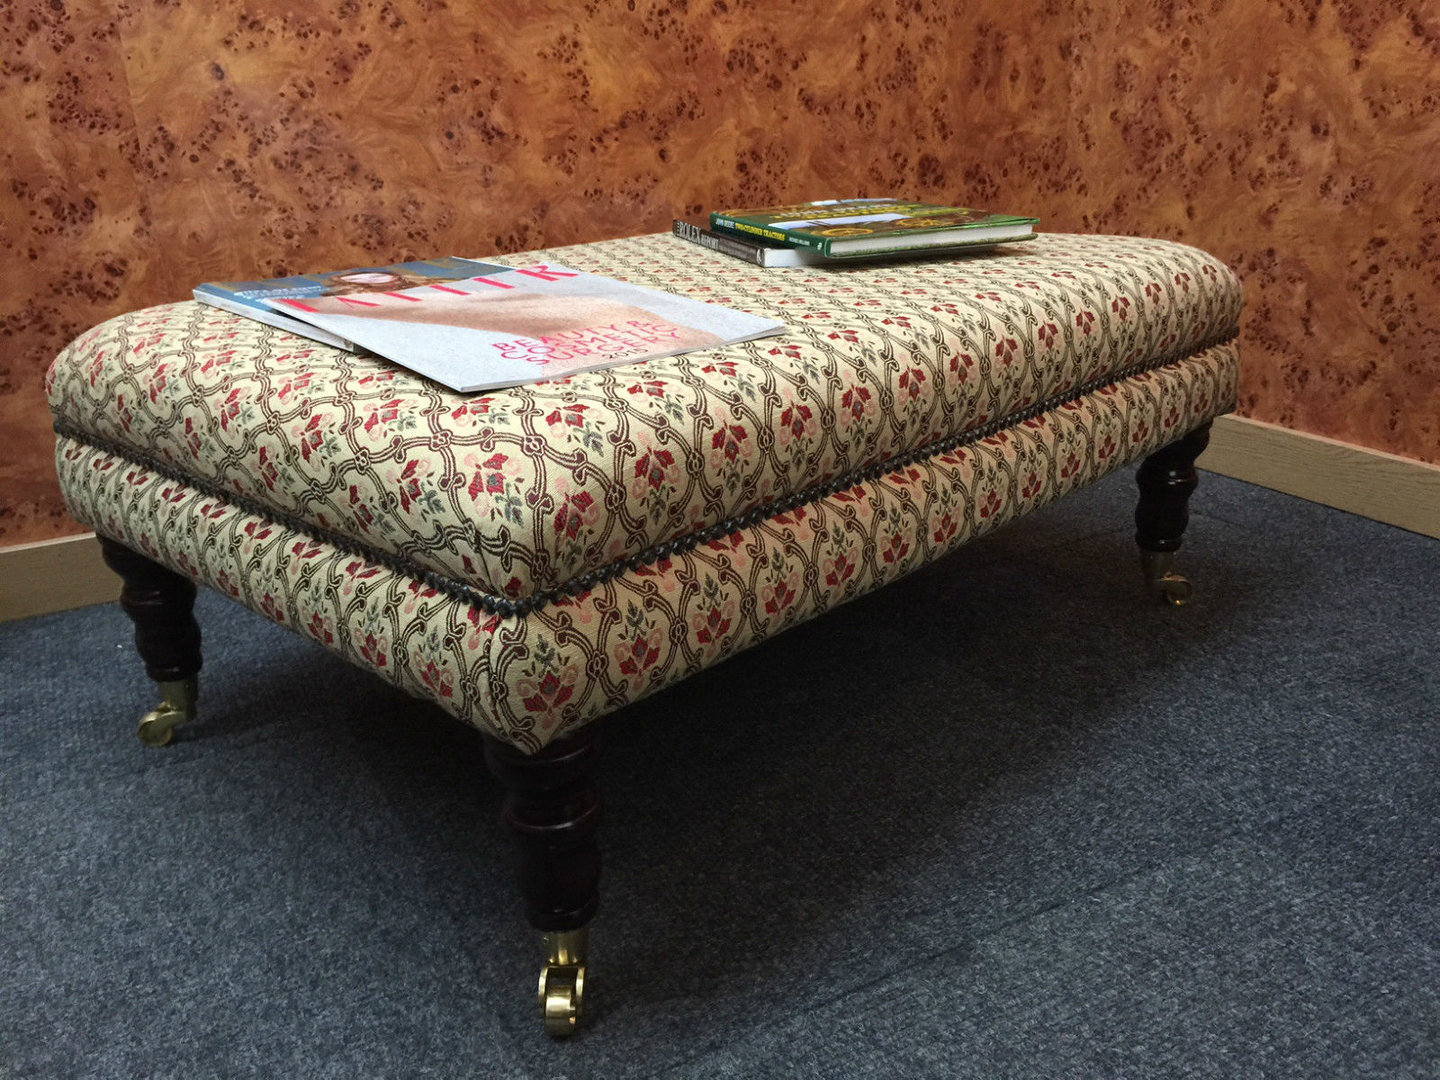 Medium Coffee Table/Footstool in Traditional Tapestry Fabric